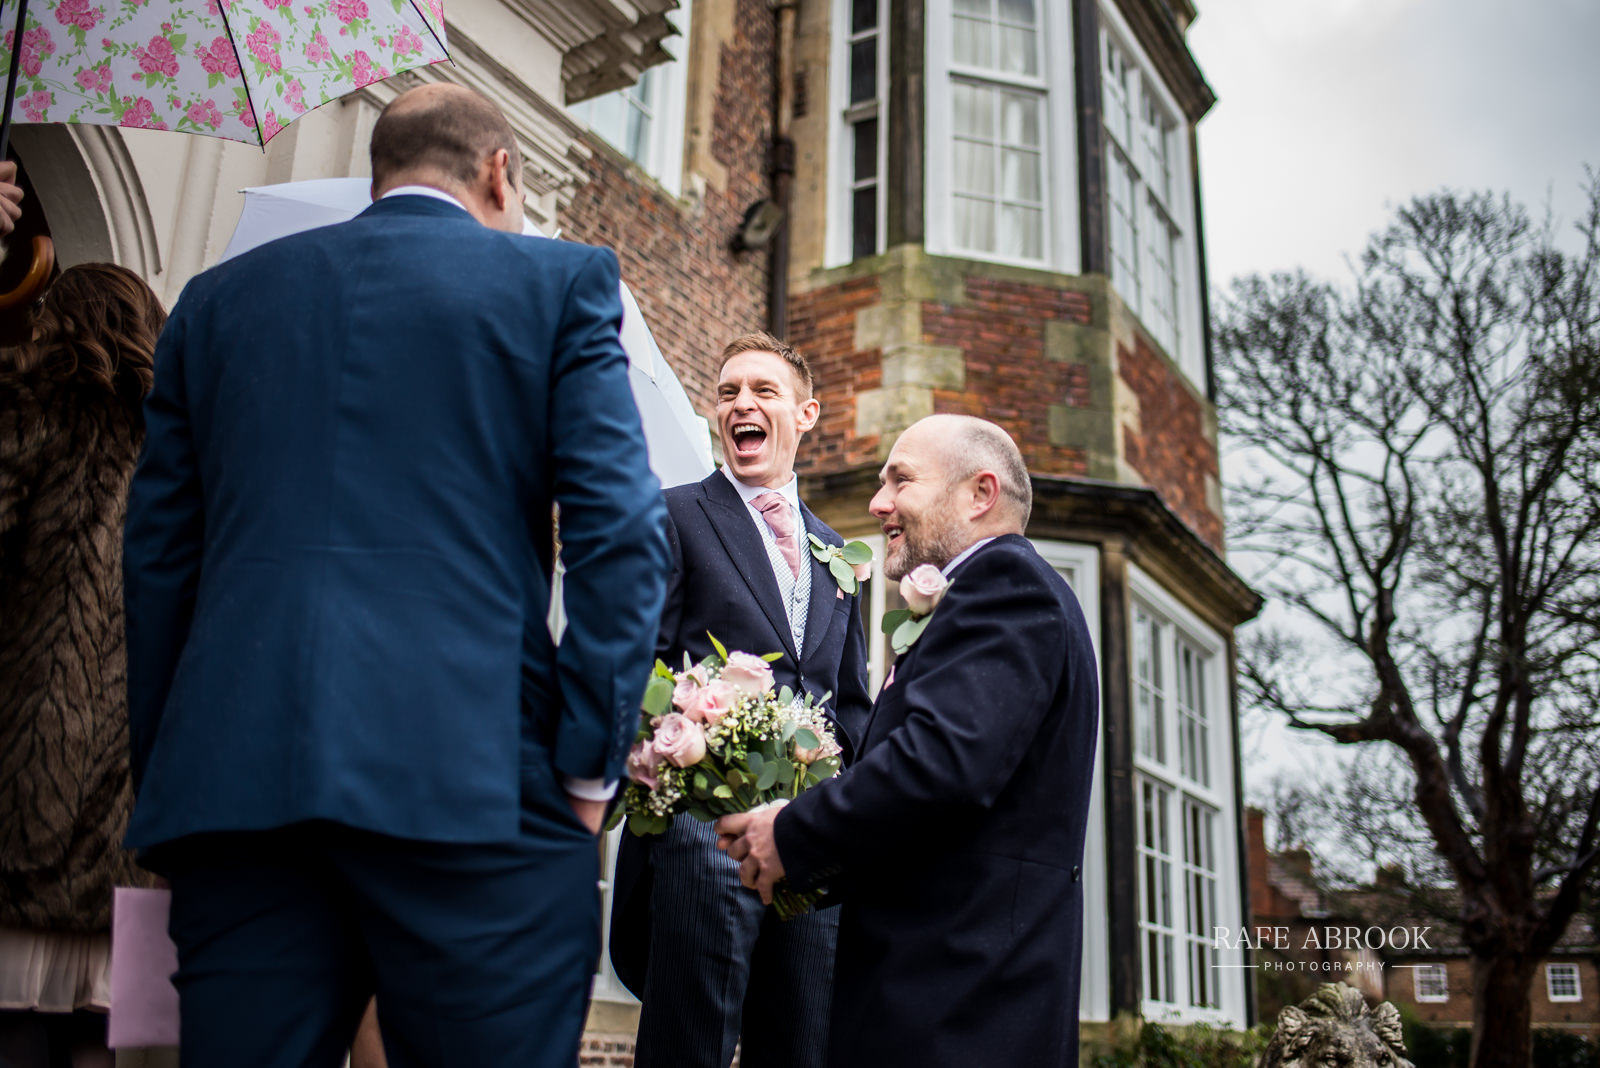 goldsborough hall wedding harrogate knaresborough yorkshire hertfordshire wedding photographer-1238.jpg